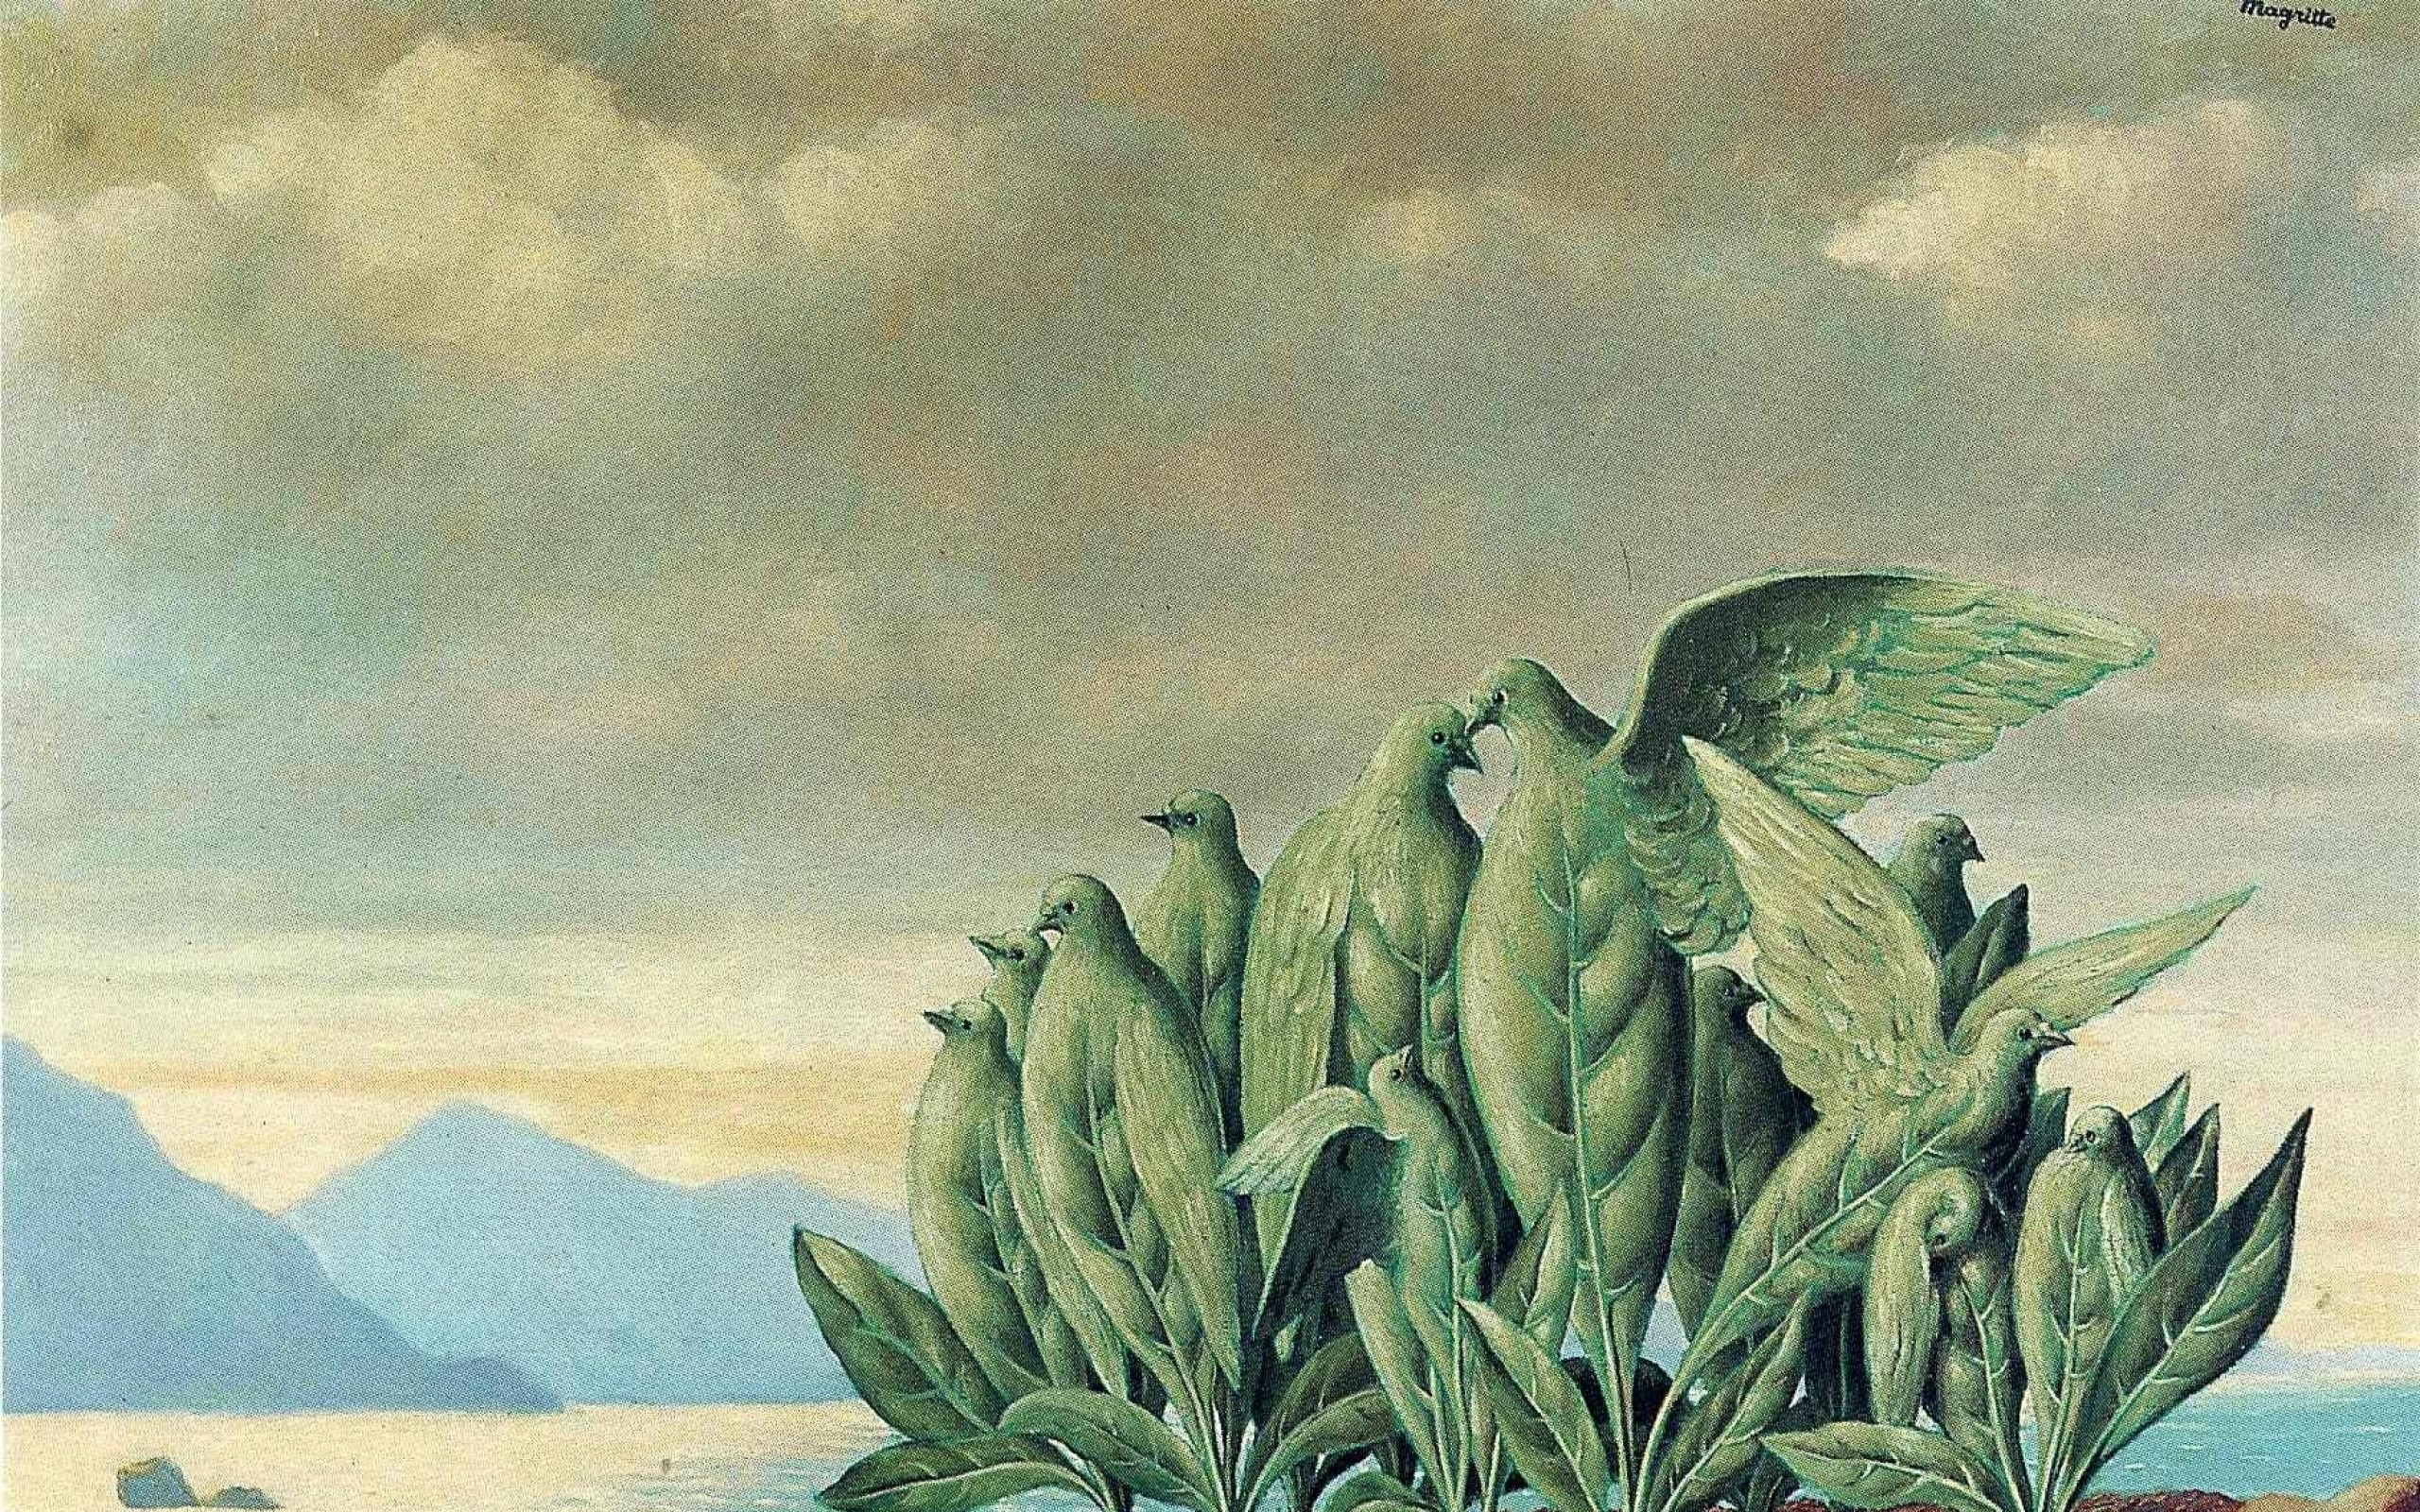 paintings mountains clouds landscapes leaves surrealism artwork traditional  art rene magritte belgia Art HD Wallpaper